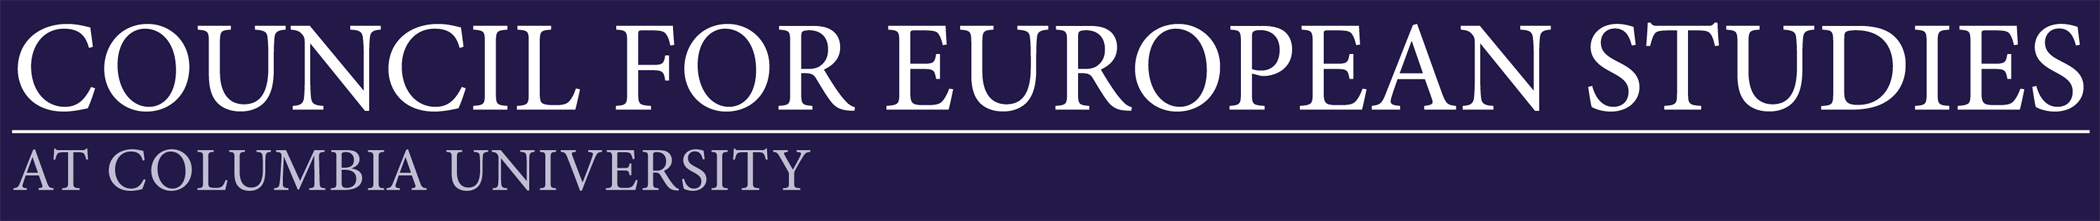 council for european studies pre-dissertation research fellowships Council for european studies pre-dissertation research fellowships awarding body: council for european studies opportunity to publish in the council's.